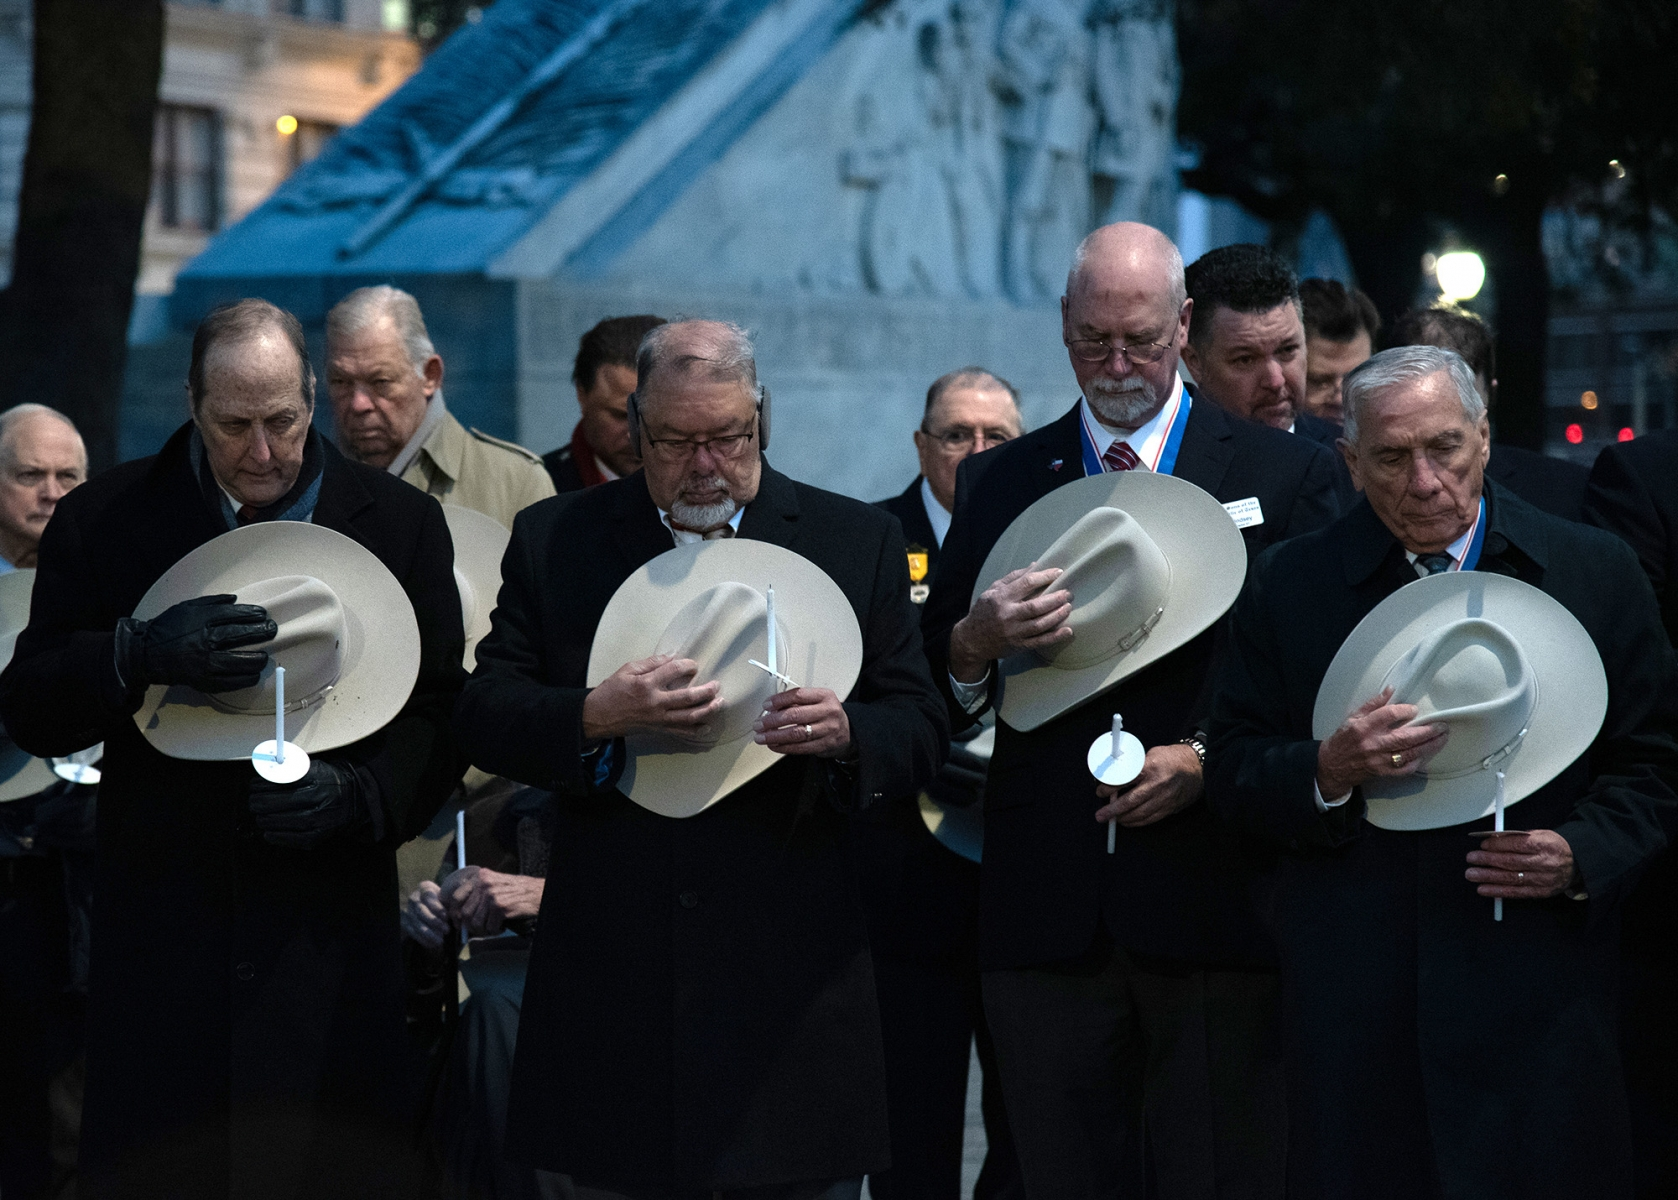 Attendees observe a moment of silence during Dawn at the Alamo ceremony March 6, 2019, at Alamo Plaza.